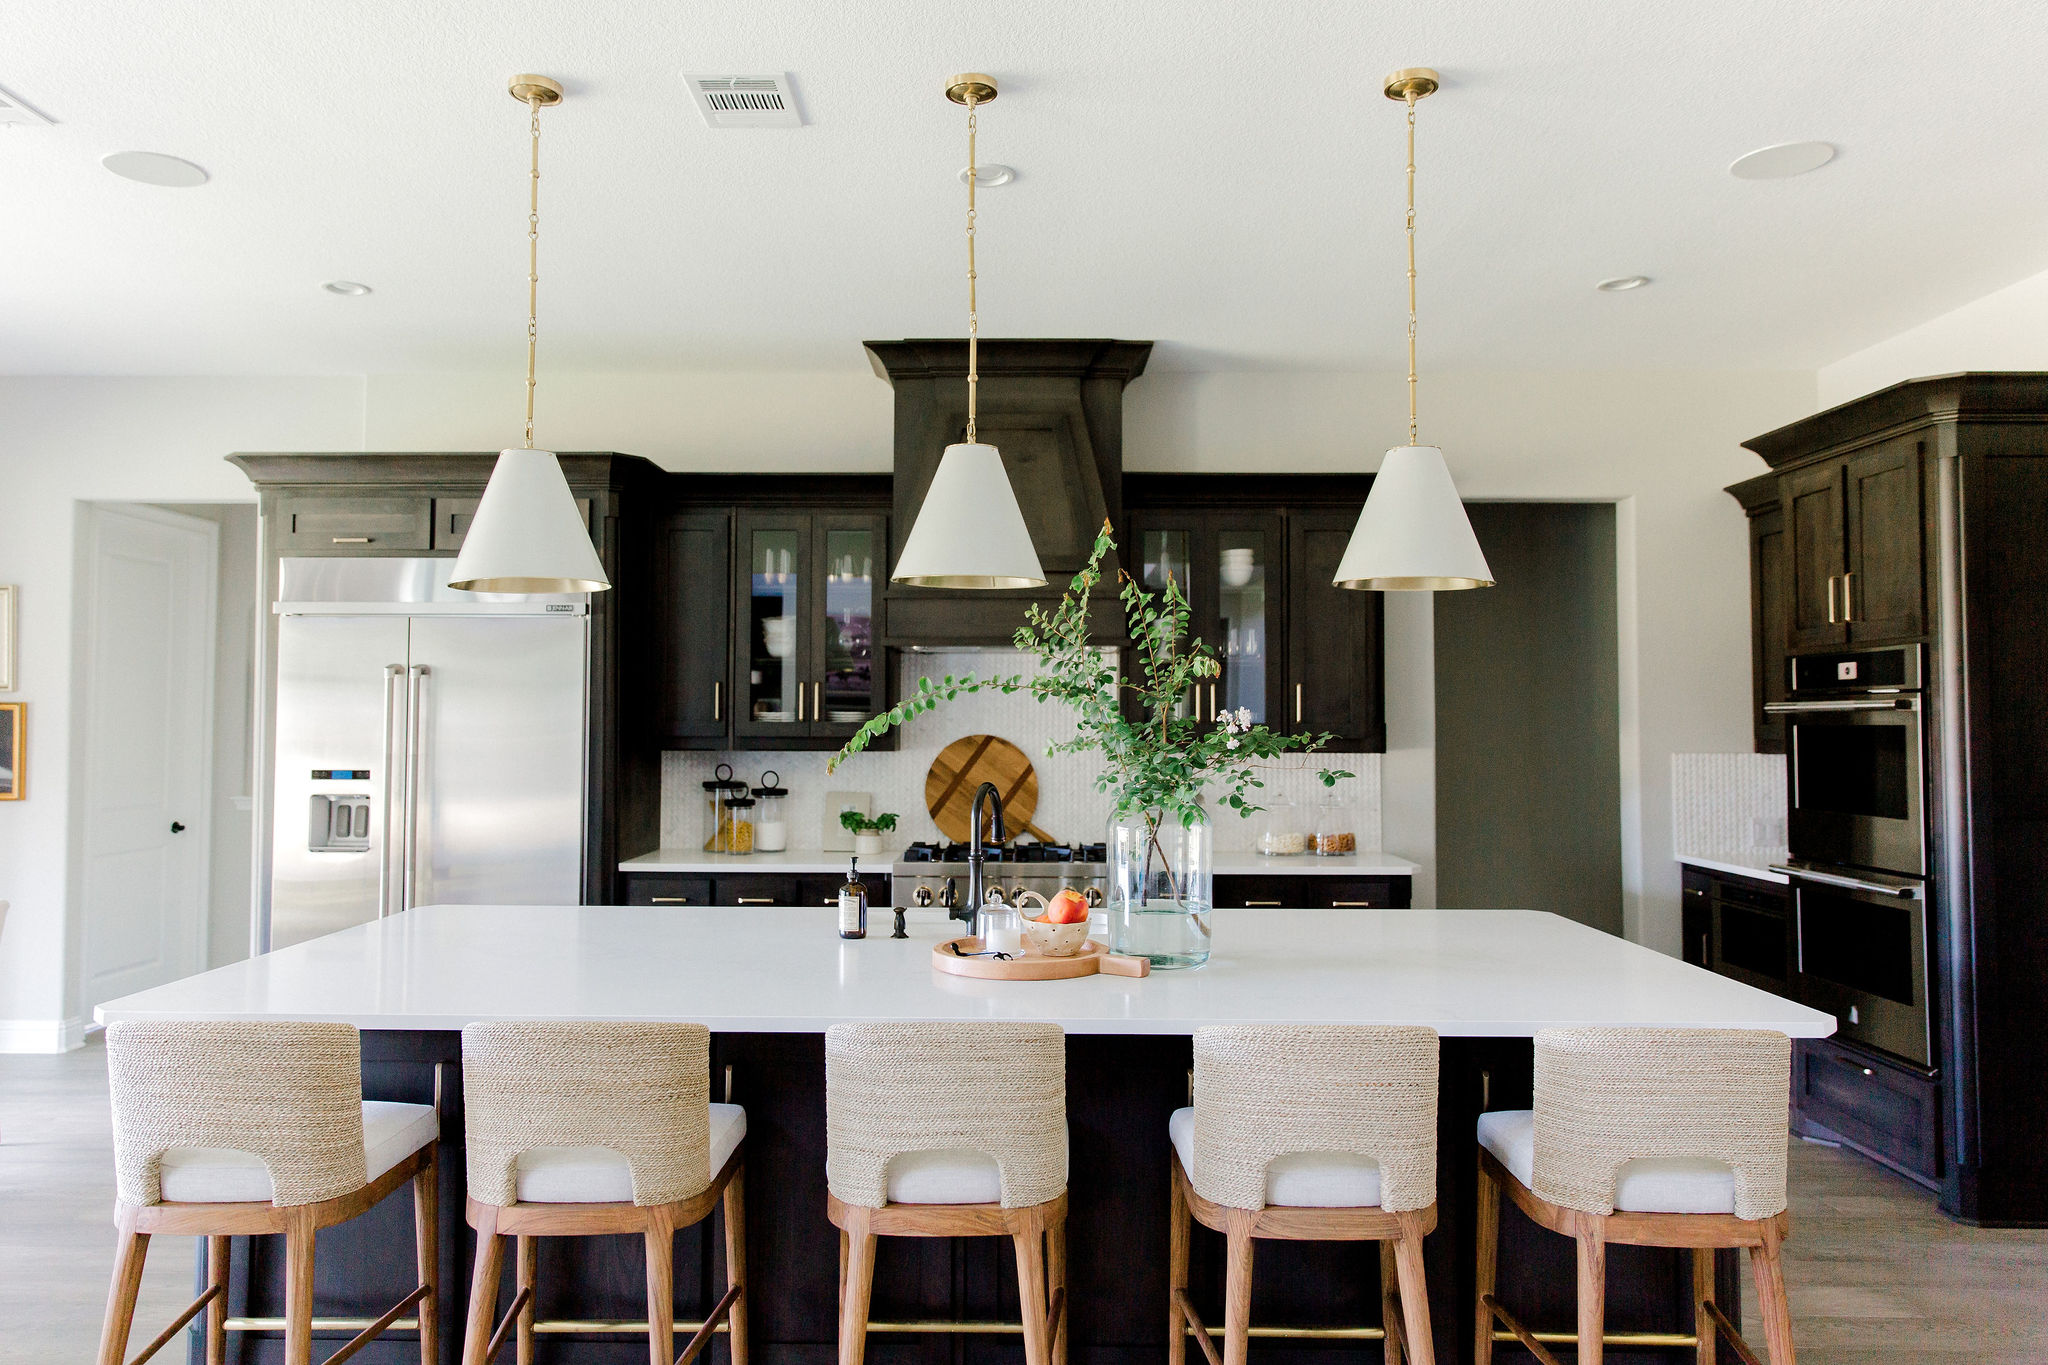 Kitchen design by Laura Design and Co, D